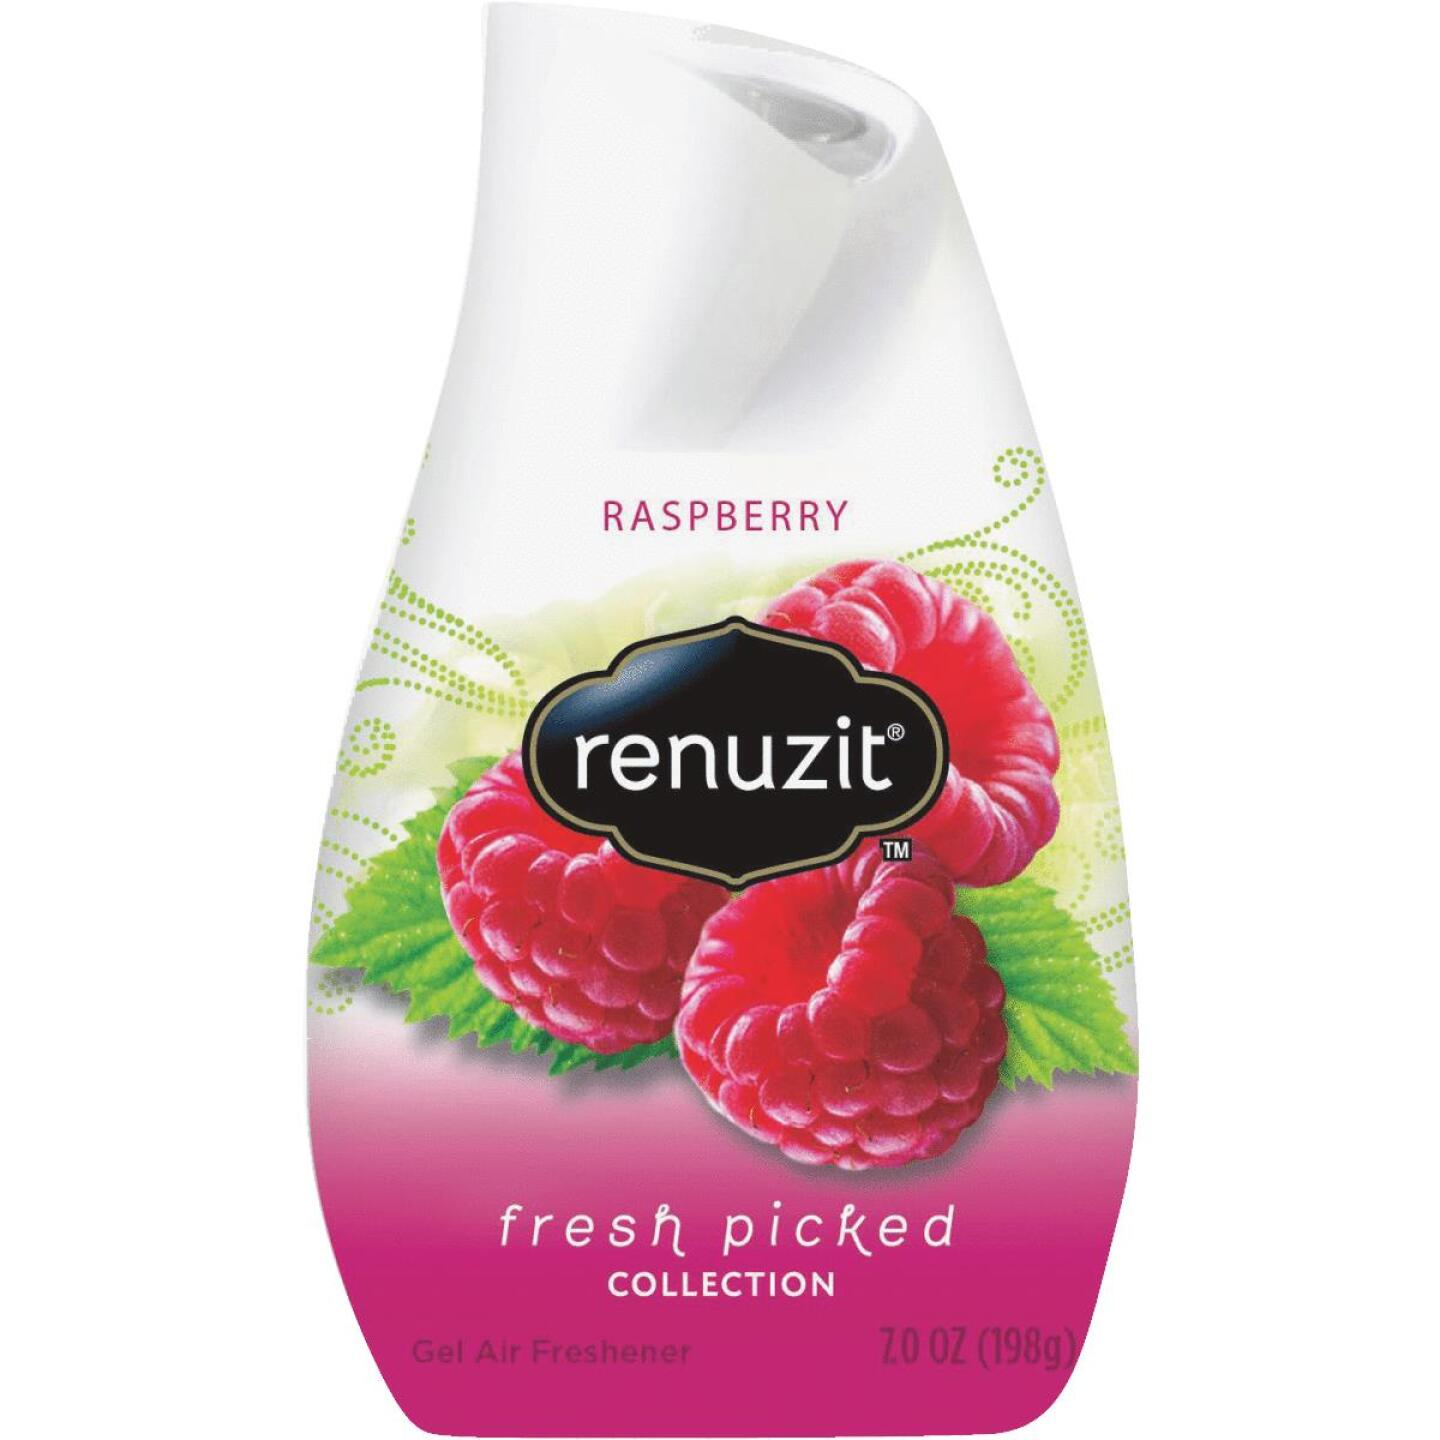 Renuzit 7 Oz. Raspberry Solid Air Freshener Image 1